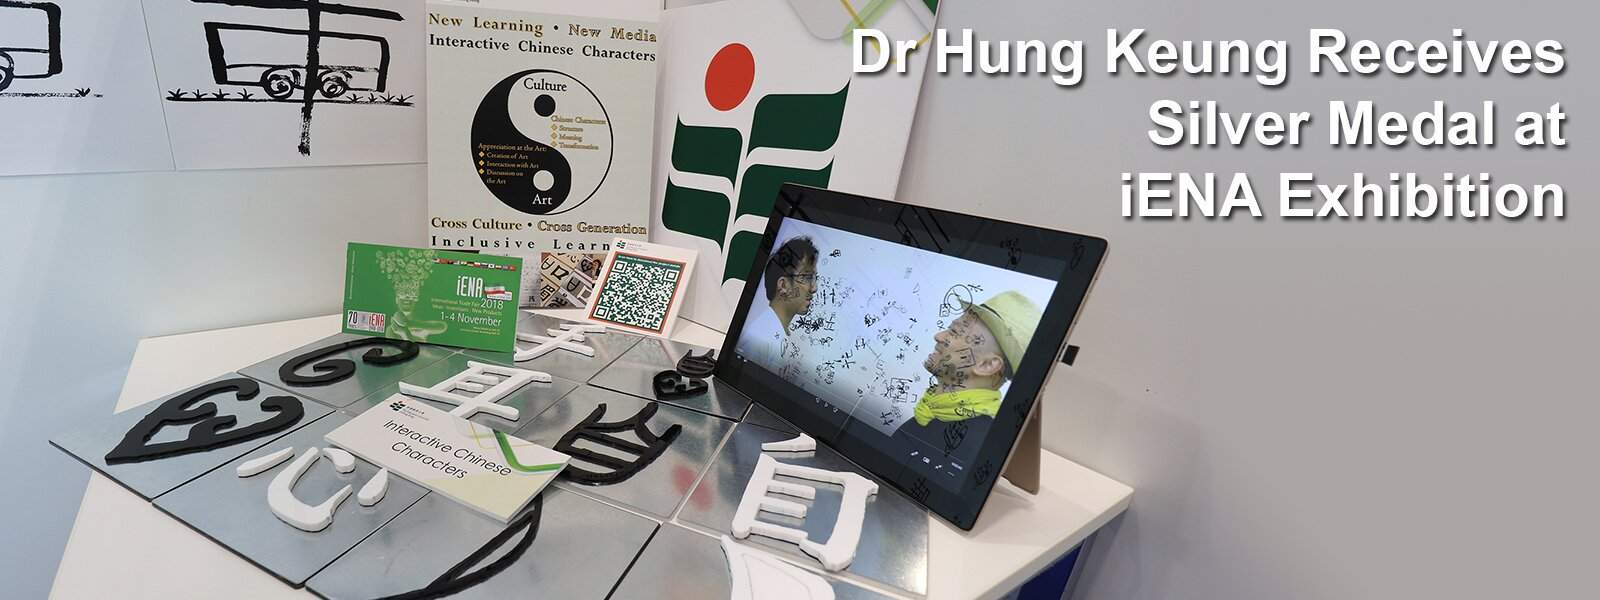 Dr Hung Keung Receives Silver Medal at iENA Exhibition